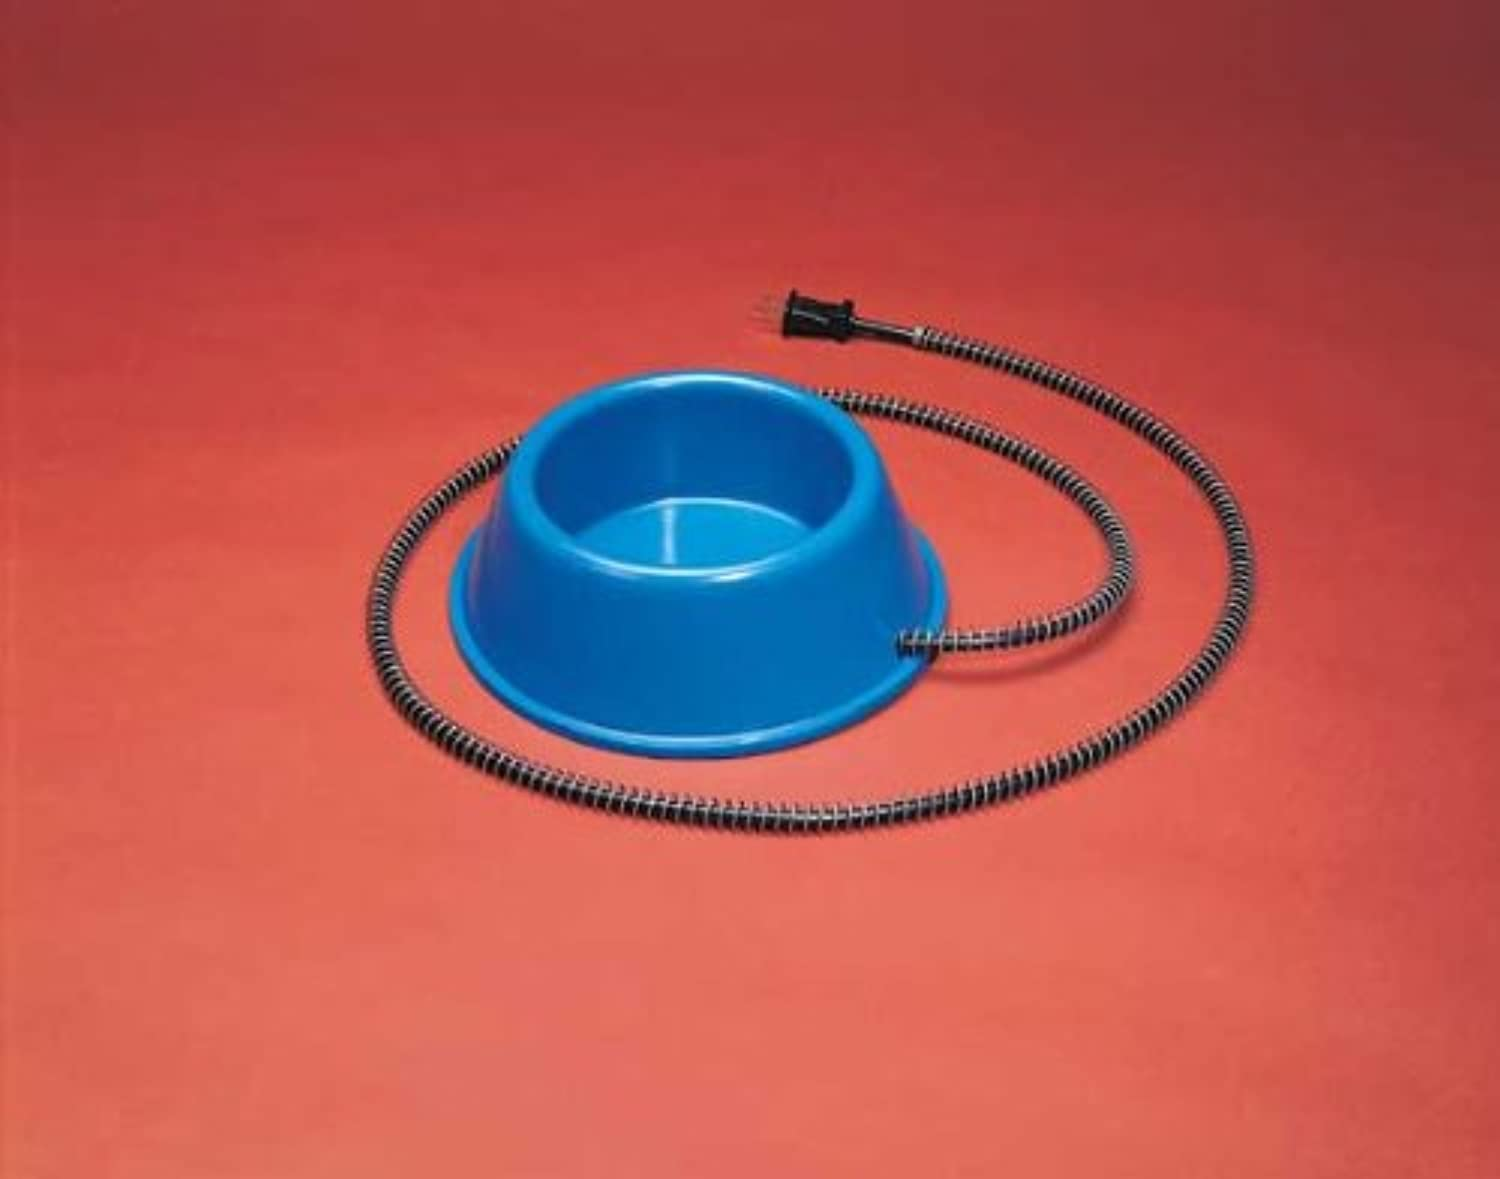 1 Qt. Heated Bowl Plastic by Allied Precision Industries